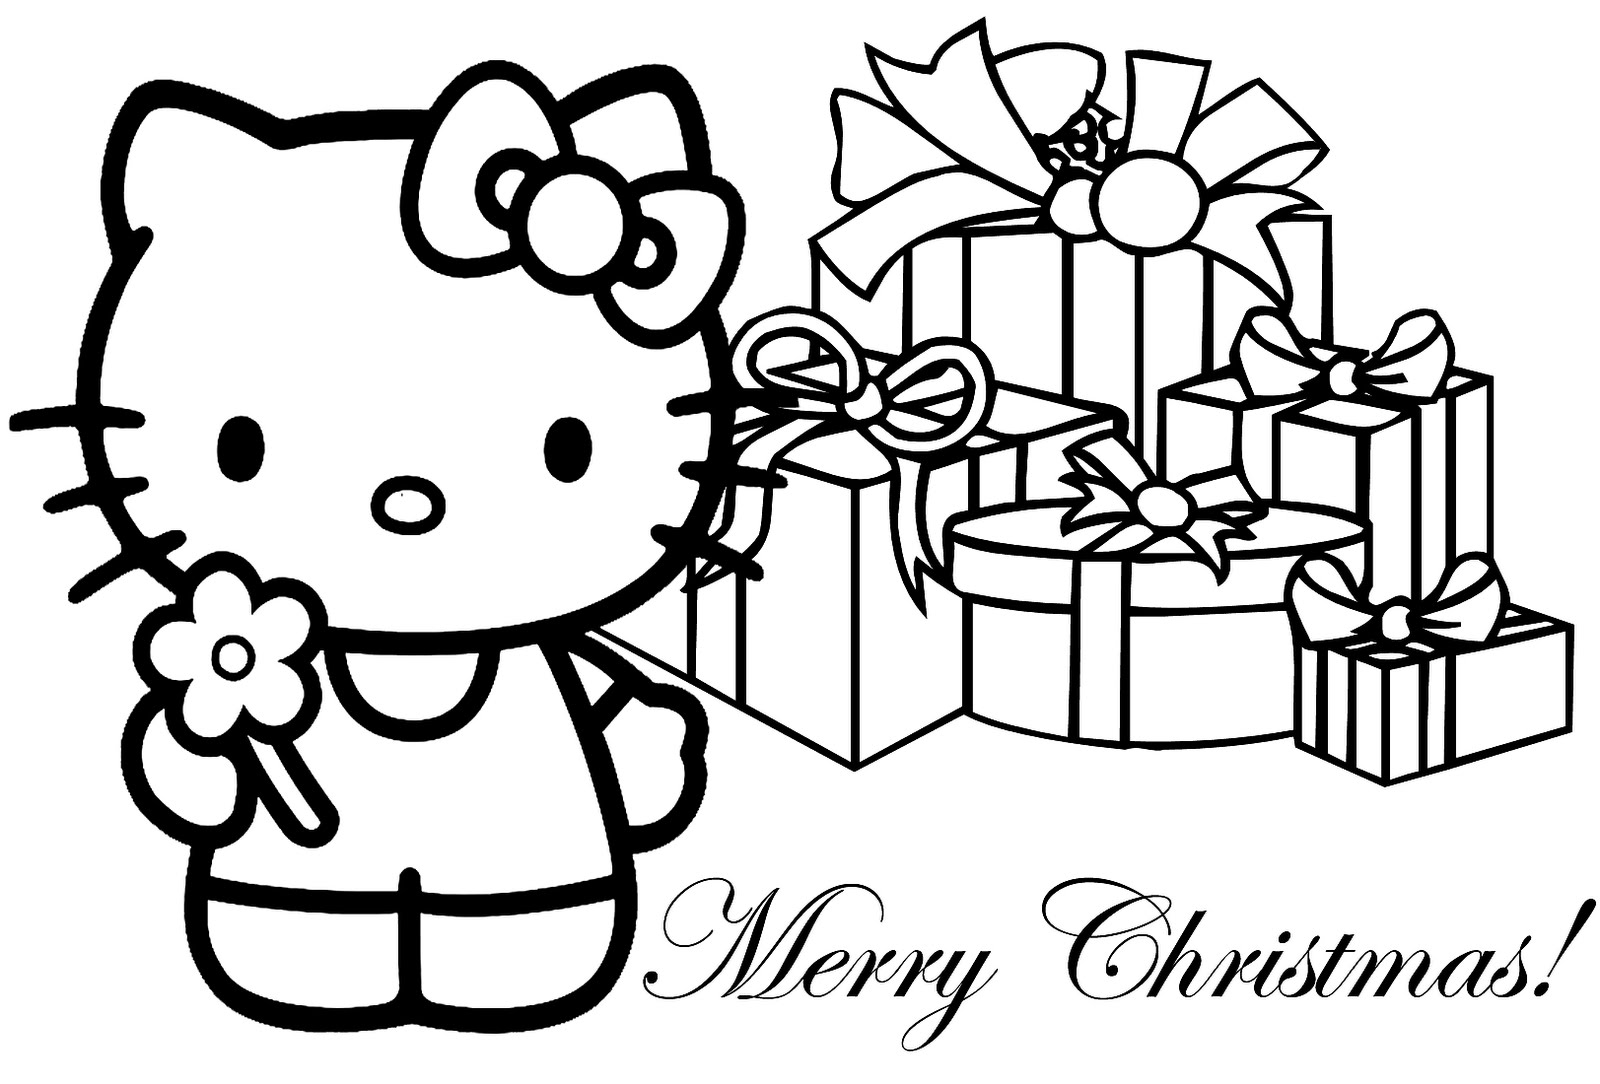 Christmas Coloring Pages (8) Coloring Kids - Coloring Kids